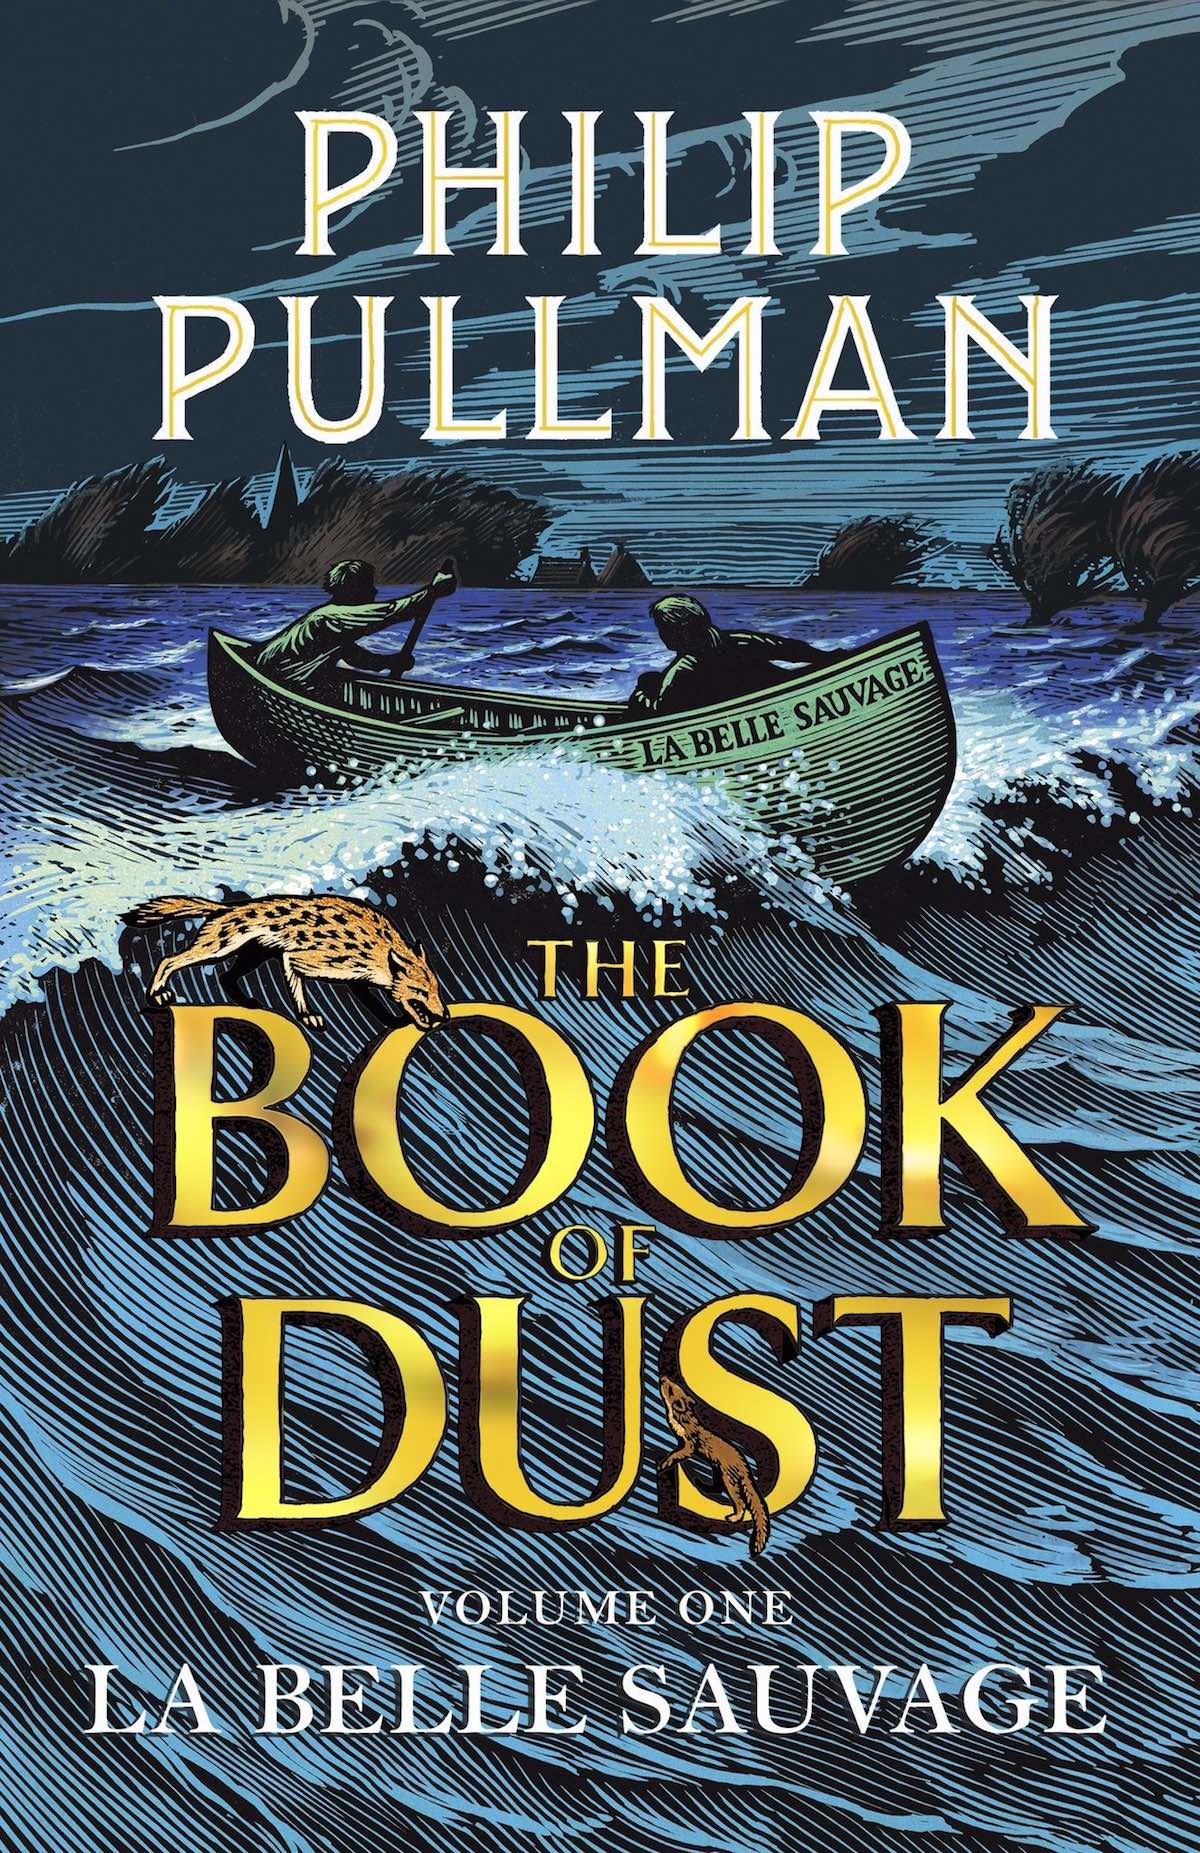 Behold the Covers for Philip Pullman's The Book of Dust | Tor.com